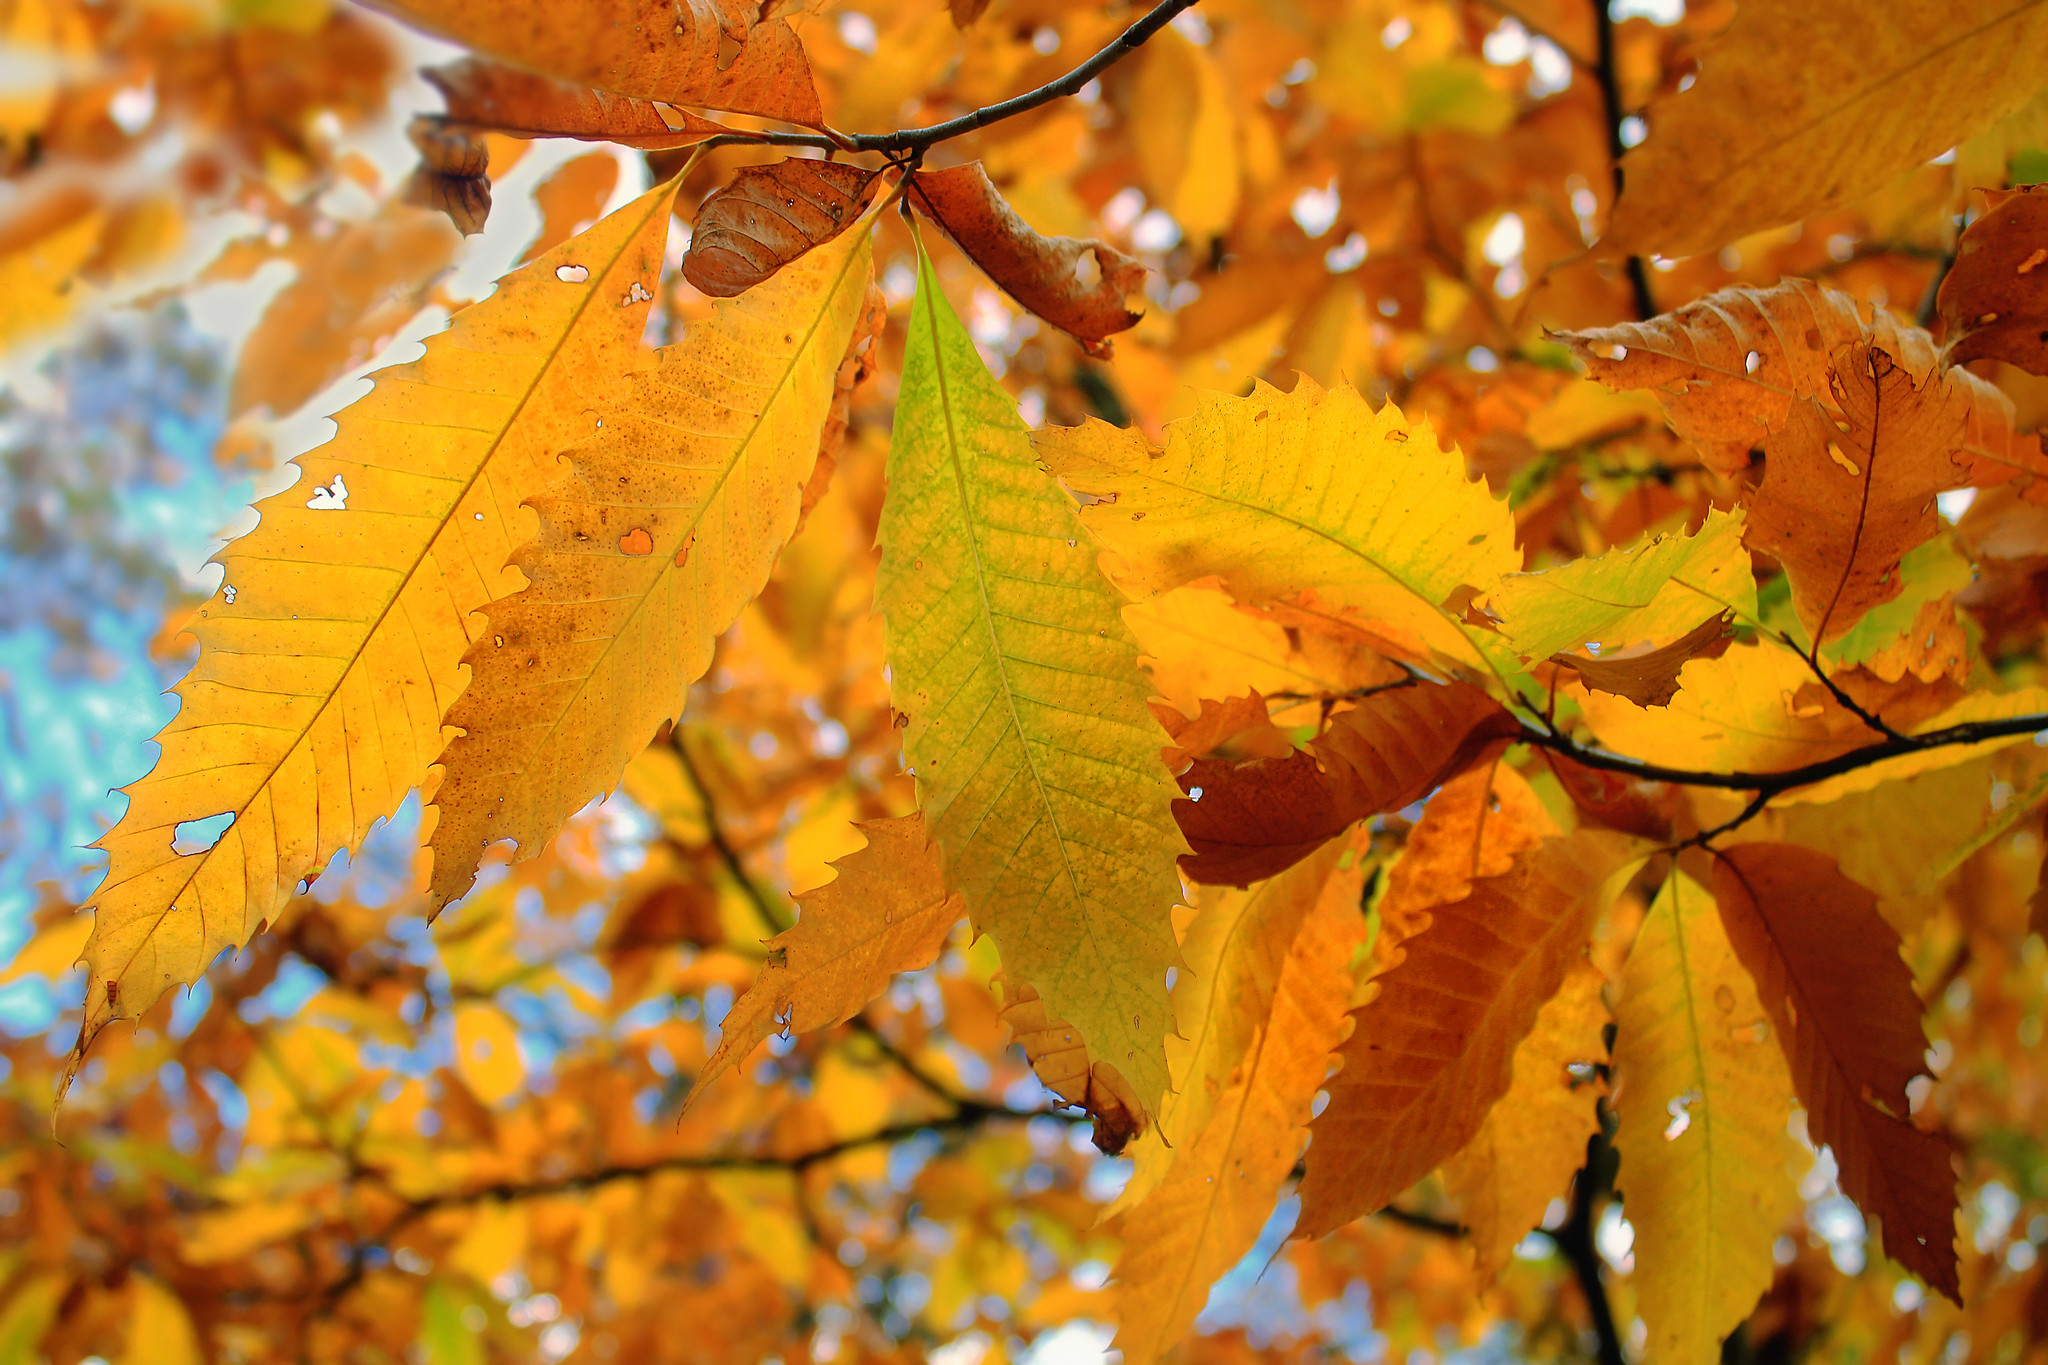 The orange and yellow leaves of the American Chestnut Tree in fall.